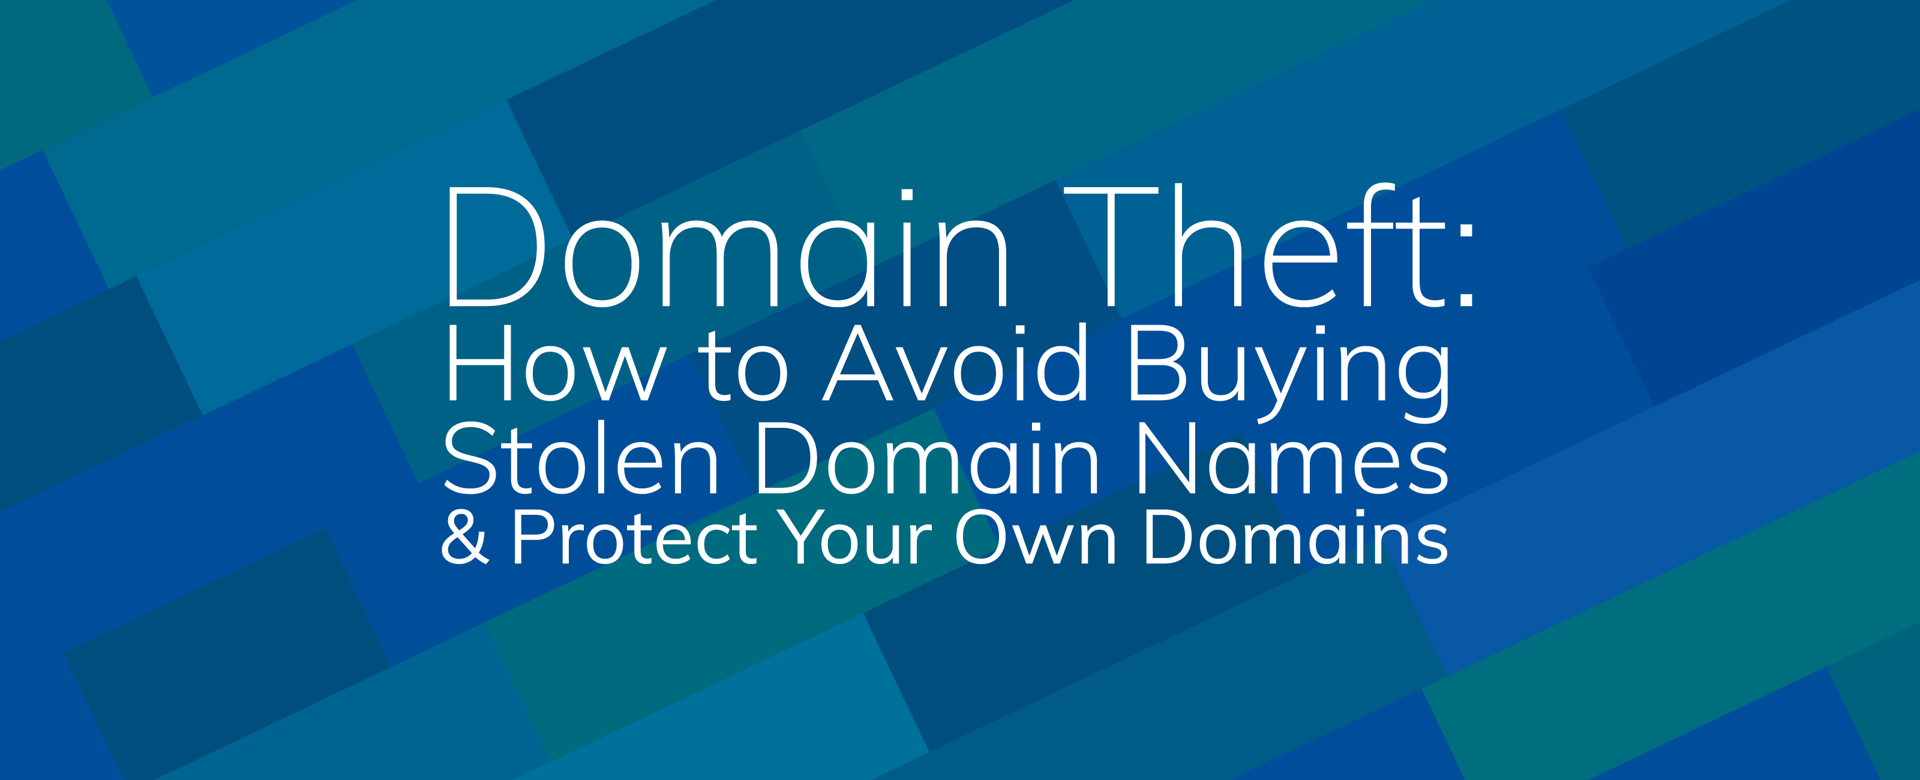 Domain Theft: How to Avoid Buying Stolen Domain Names and Protect